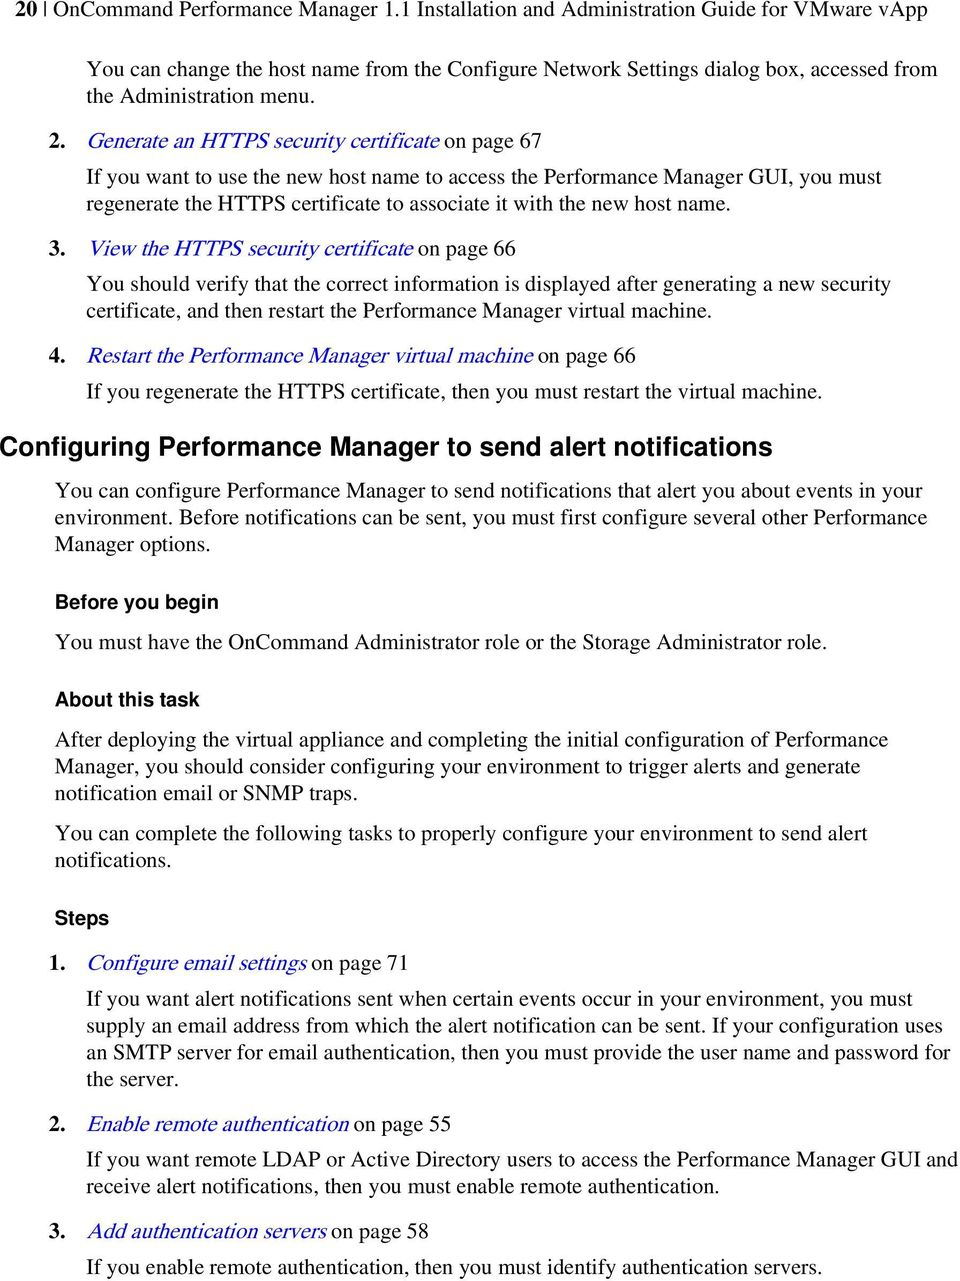 Generate an HTTPS security certificate on page 67 If you want to use the new host name to access the Performance Manager GUI, you must regenerate the HTTPS certificate to associate it with the new